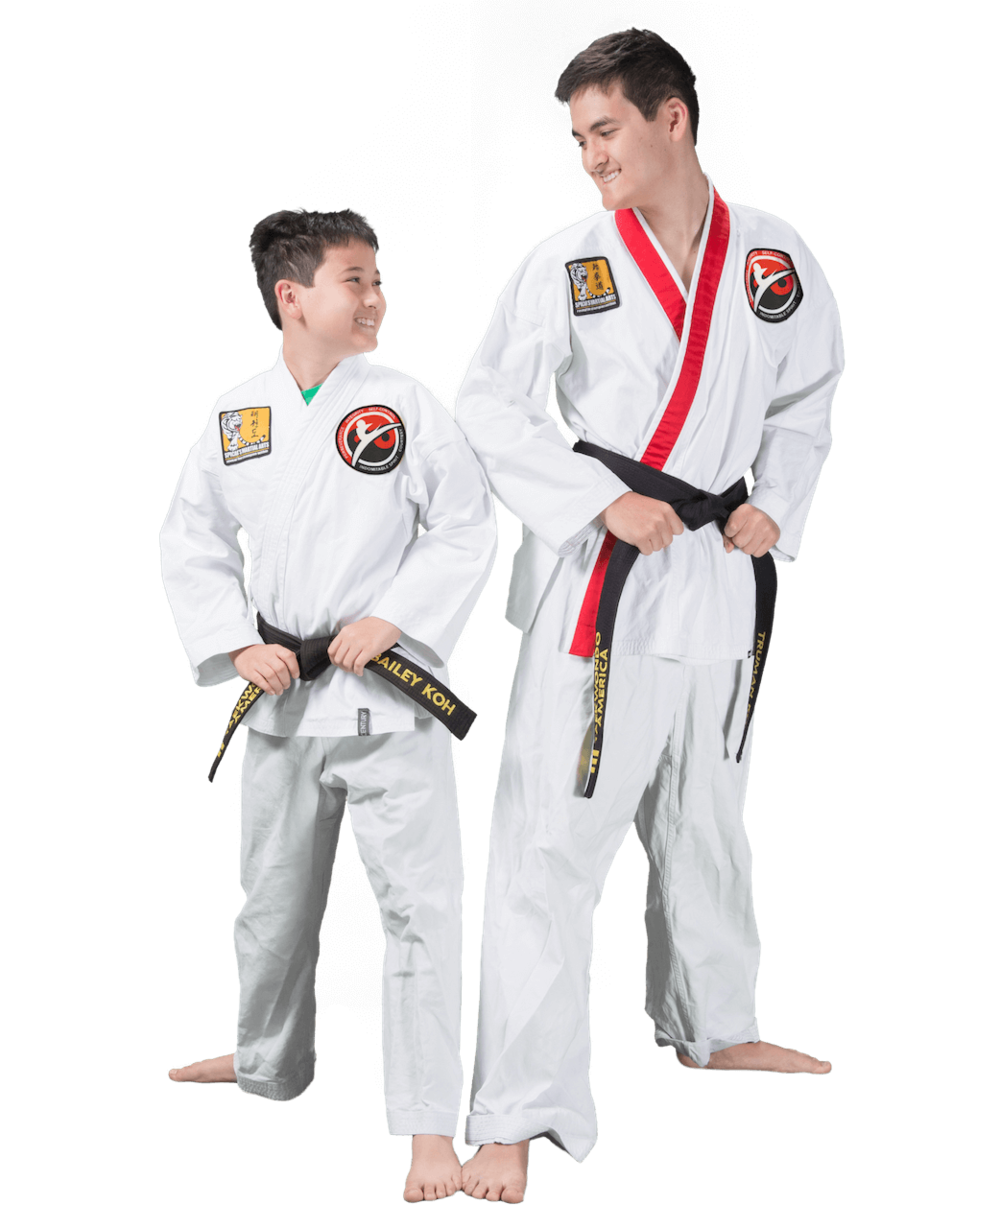 MARTIAL ARTS FOR TEENS(age 12-17) - It is more challenging than ever to be a teenager in America. Peer pressure and daily overload of social media cause anxiety in our teens.We have the ultimate way for your teenager to:✔︎ Build self-esteem✔︎ Play less video games 🎮🎮✔︎ Make good choices✔︎ Learn solid bully defense✔︎ Become self-motivated✔︎ Improve body fitness and strength✔︎ Have fun and make new friendsFind out below how we will help your child get stronger not only physically but also emotionally, socially and intellectually.